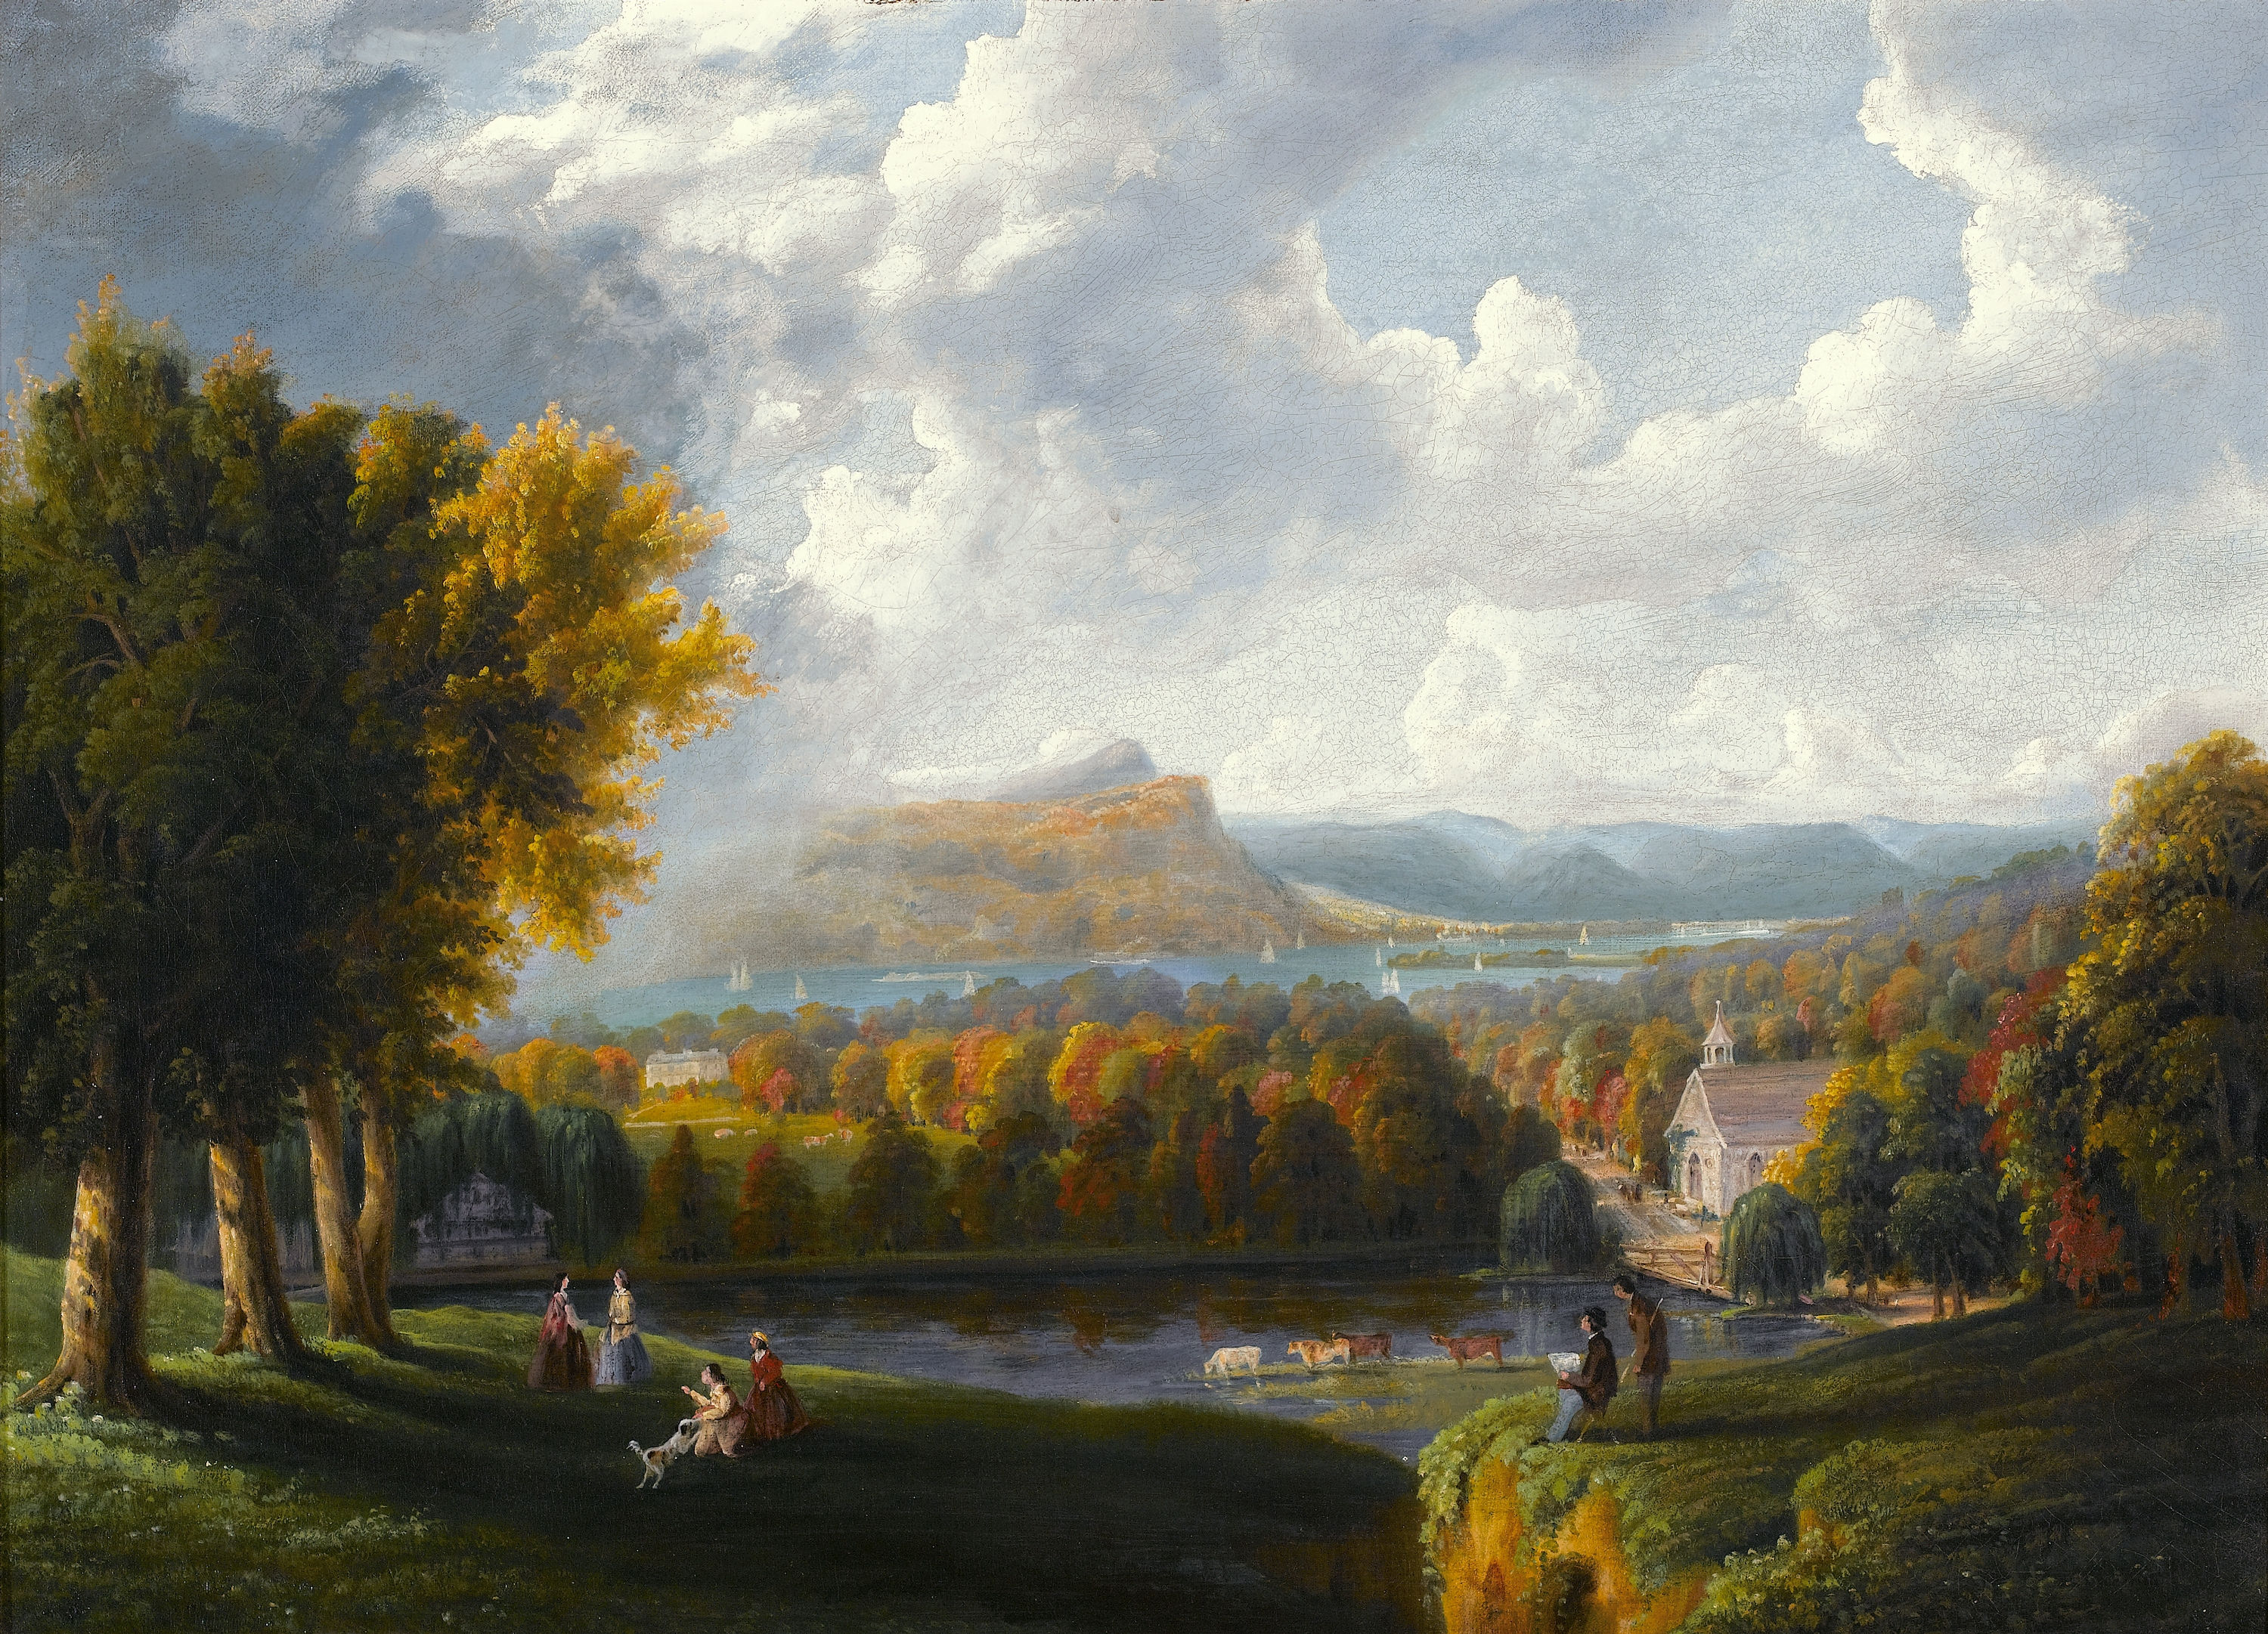 View of the Hudson River, by Robert Havell, 1866